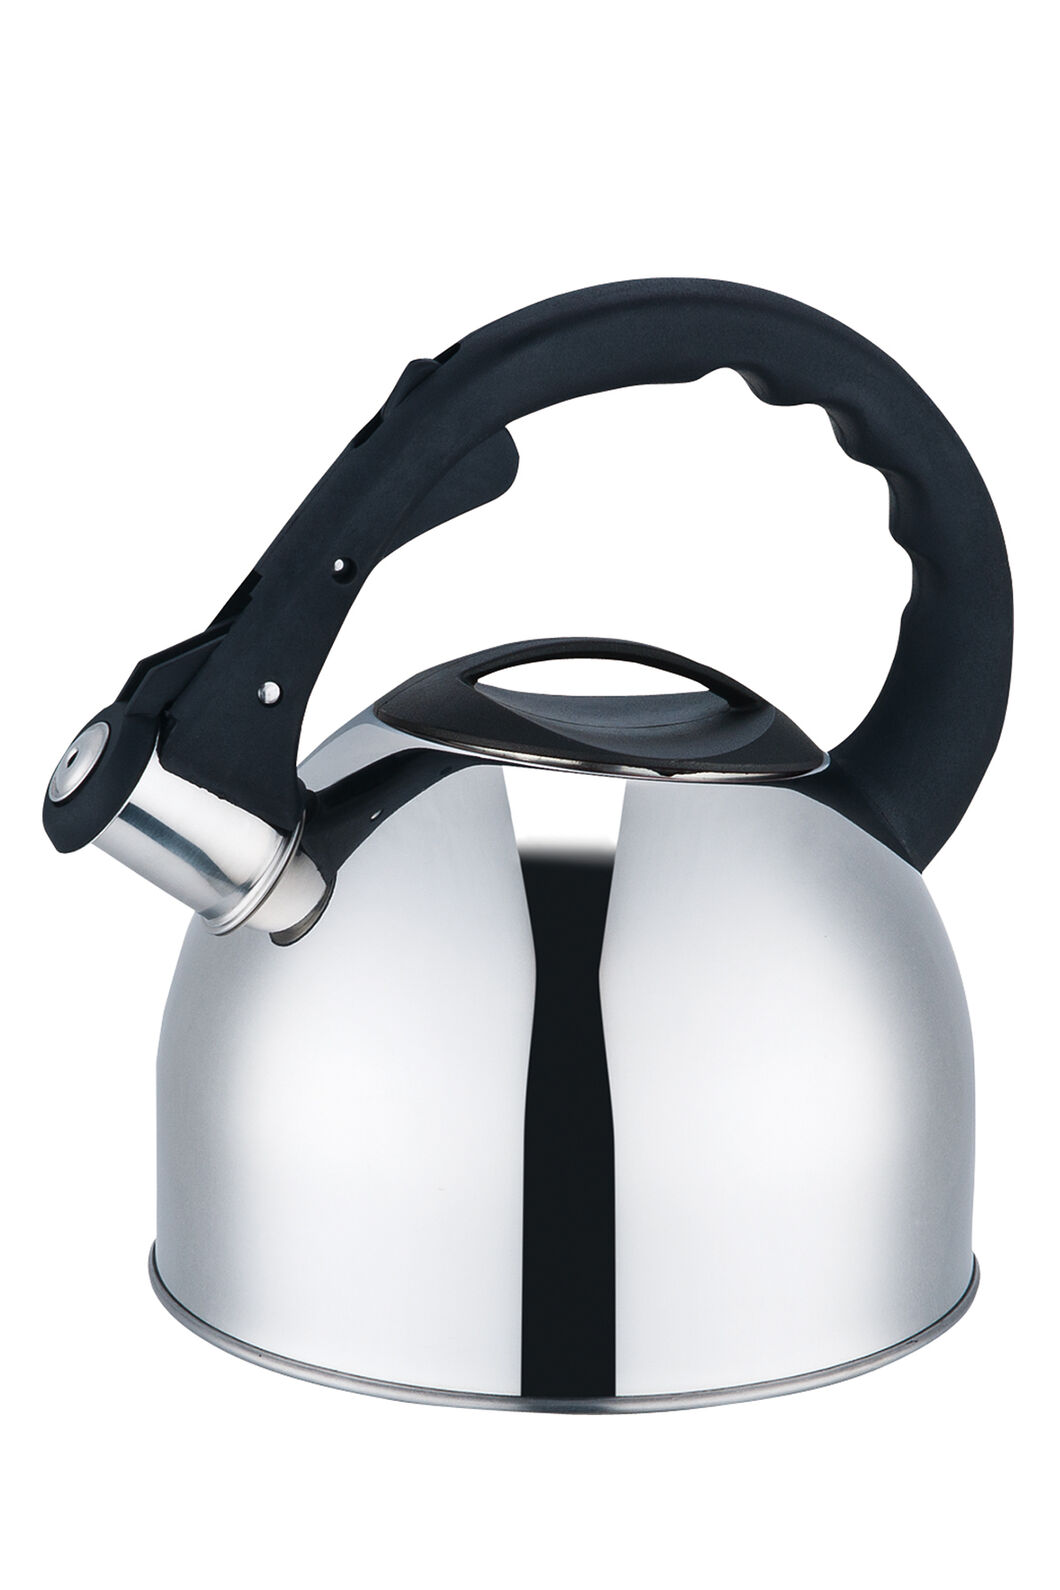 Wanderer 2L Whistling Kettle Stainless Steel, None, hi-res